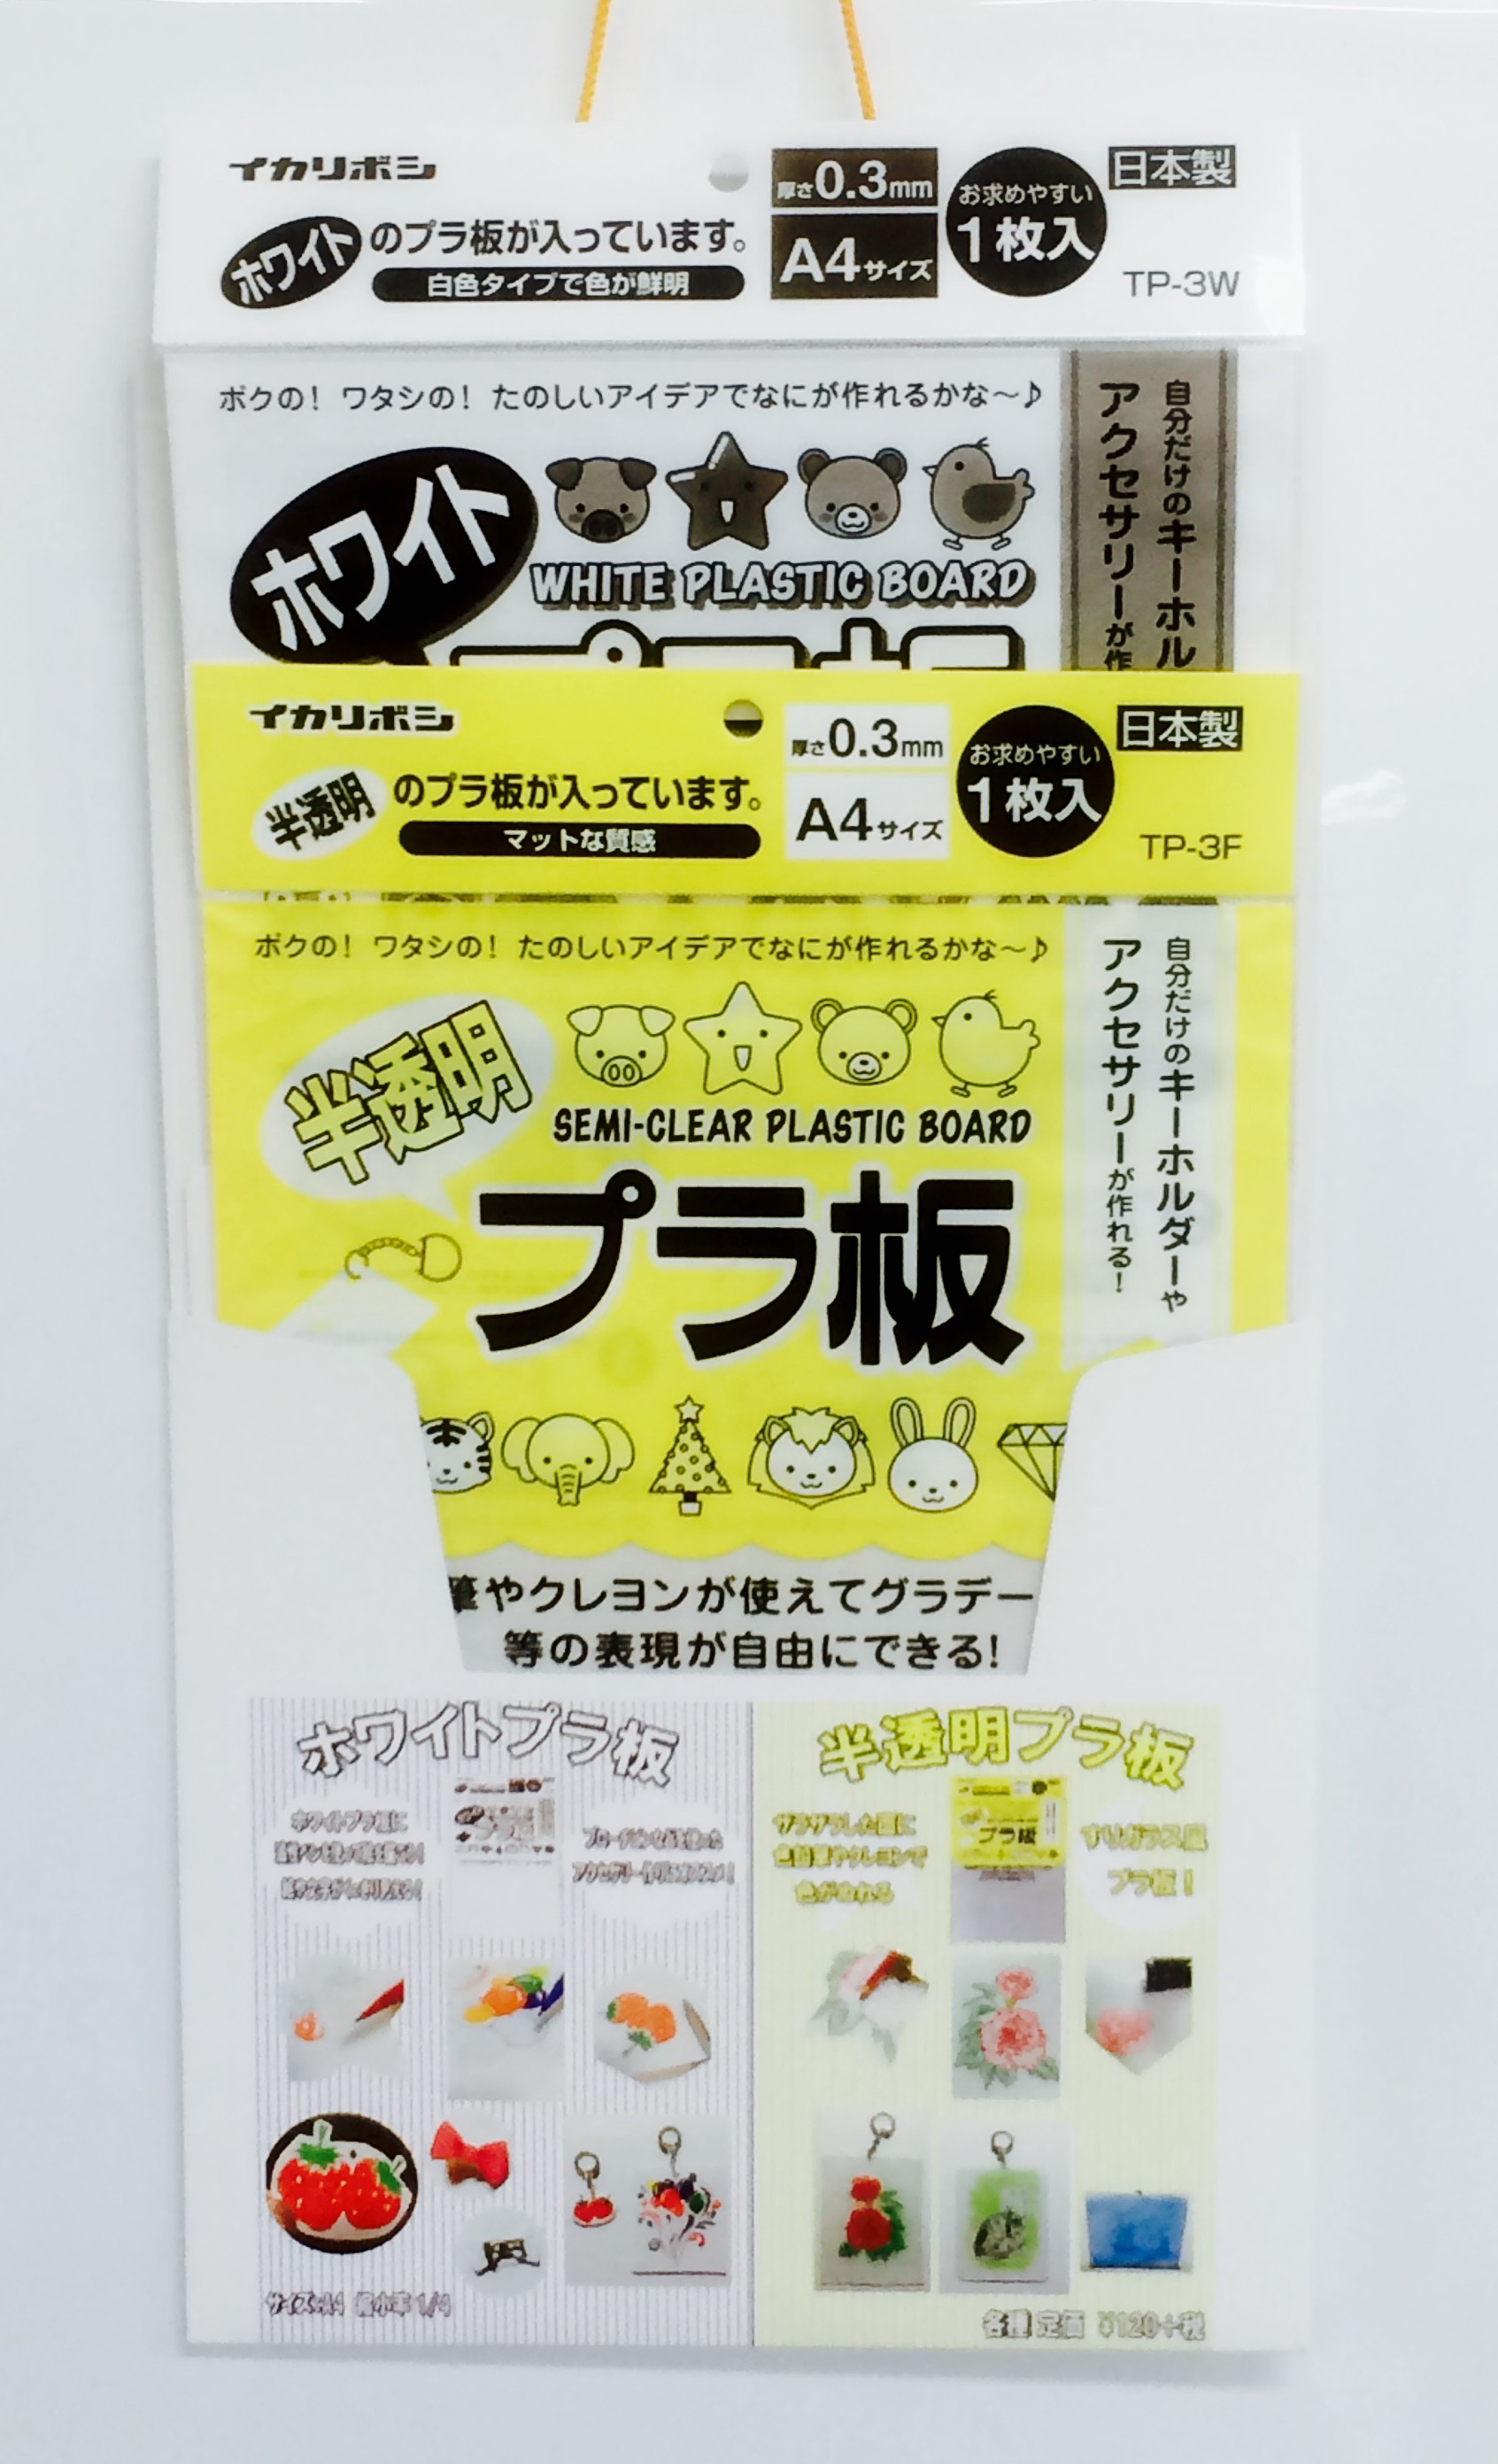 http://www.nishikei.co.jp/new_products/TP-3FW.jpg